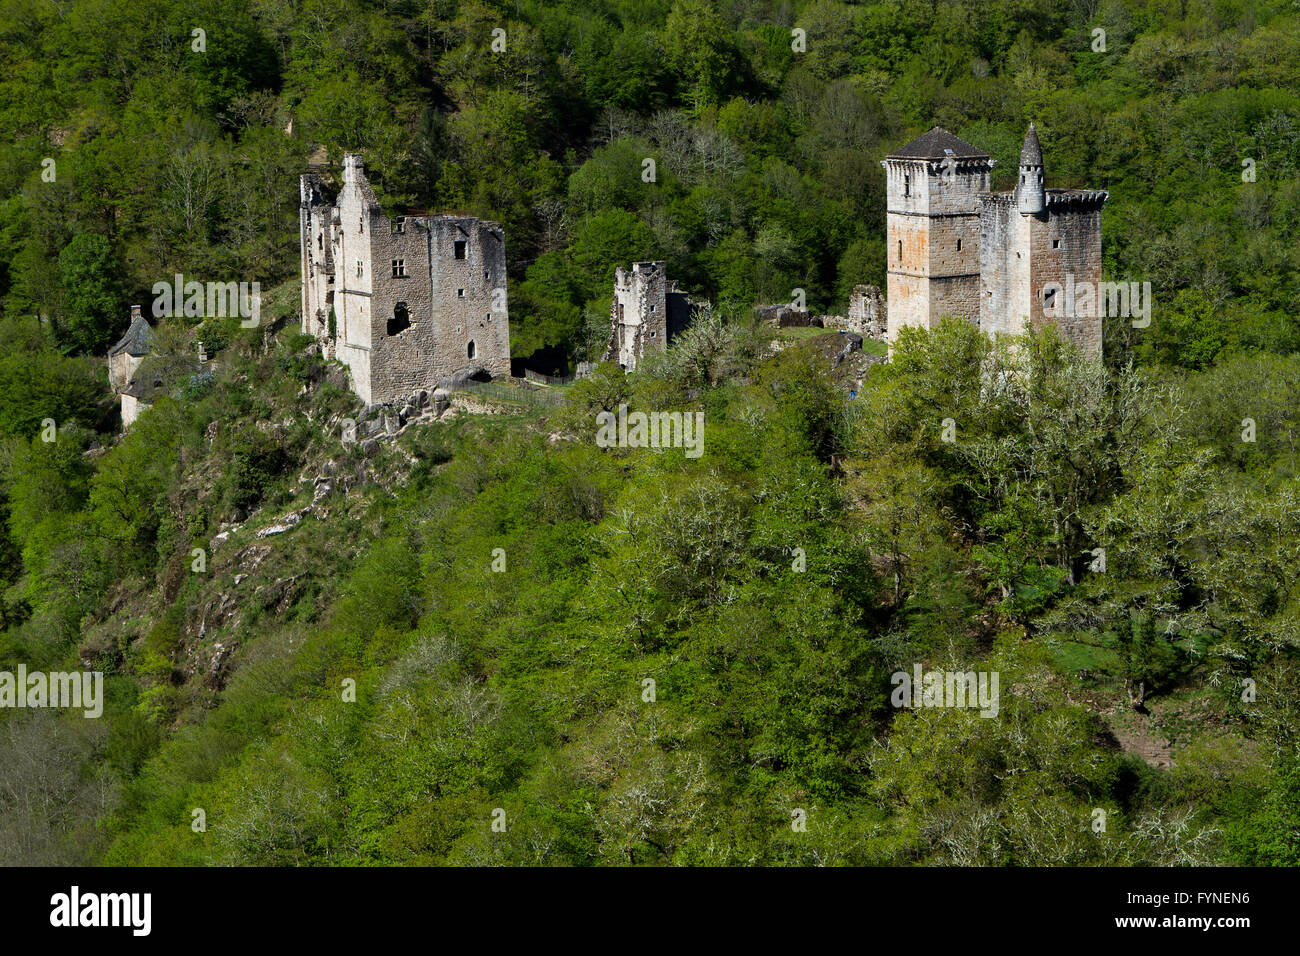 Les Tours de Merle 12th century Medieval castle in Corrèze, Aquitaine Limousin Poitou Charentes France Stock Photo